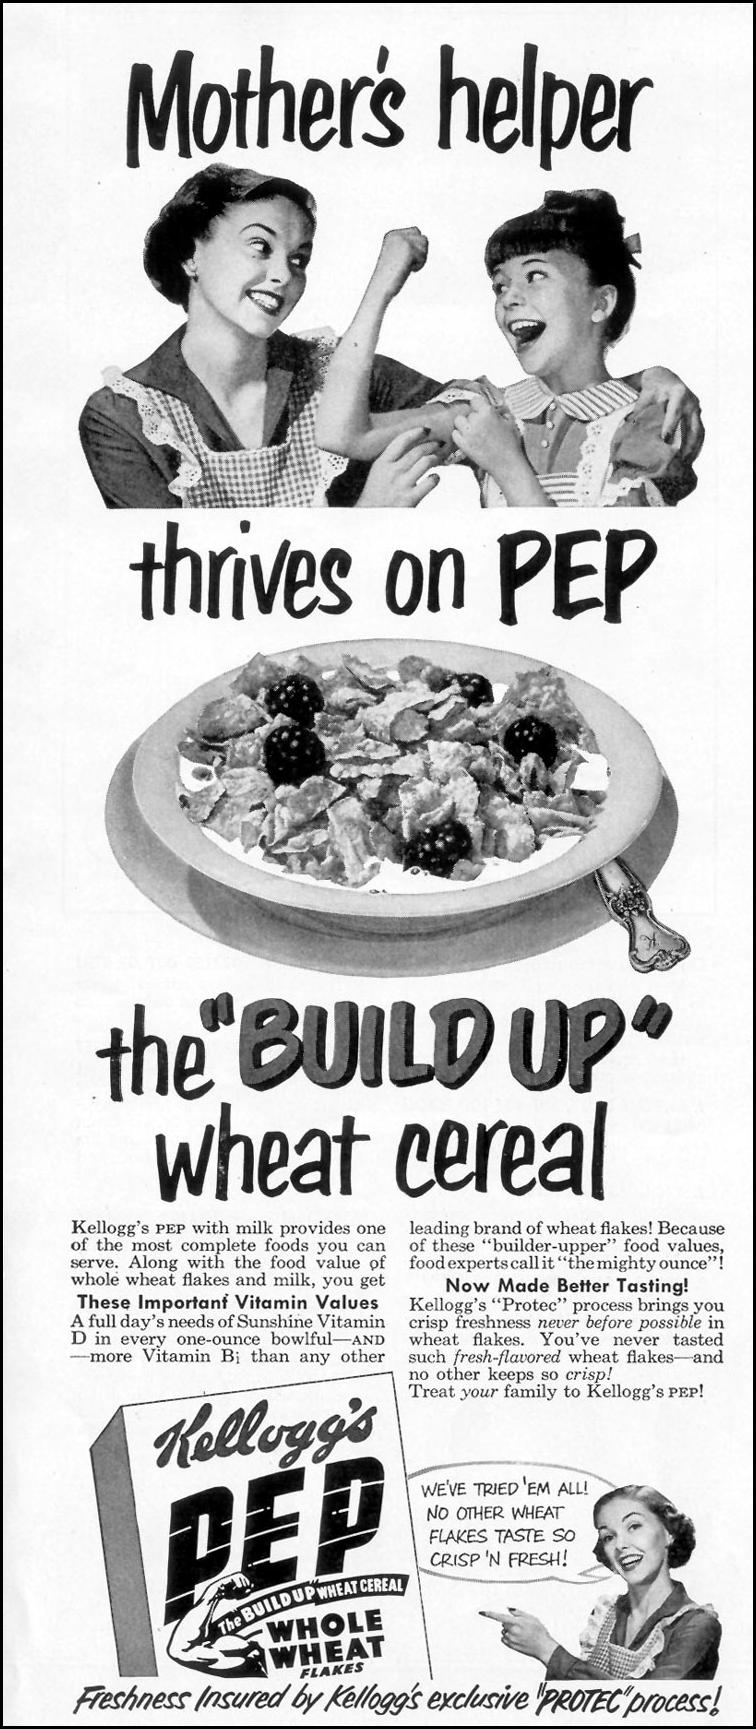 KELLOGG'S PEP WHOLE WHEAT FLAKES LOOK 12/04/1951 p. 44